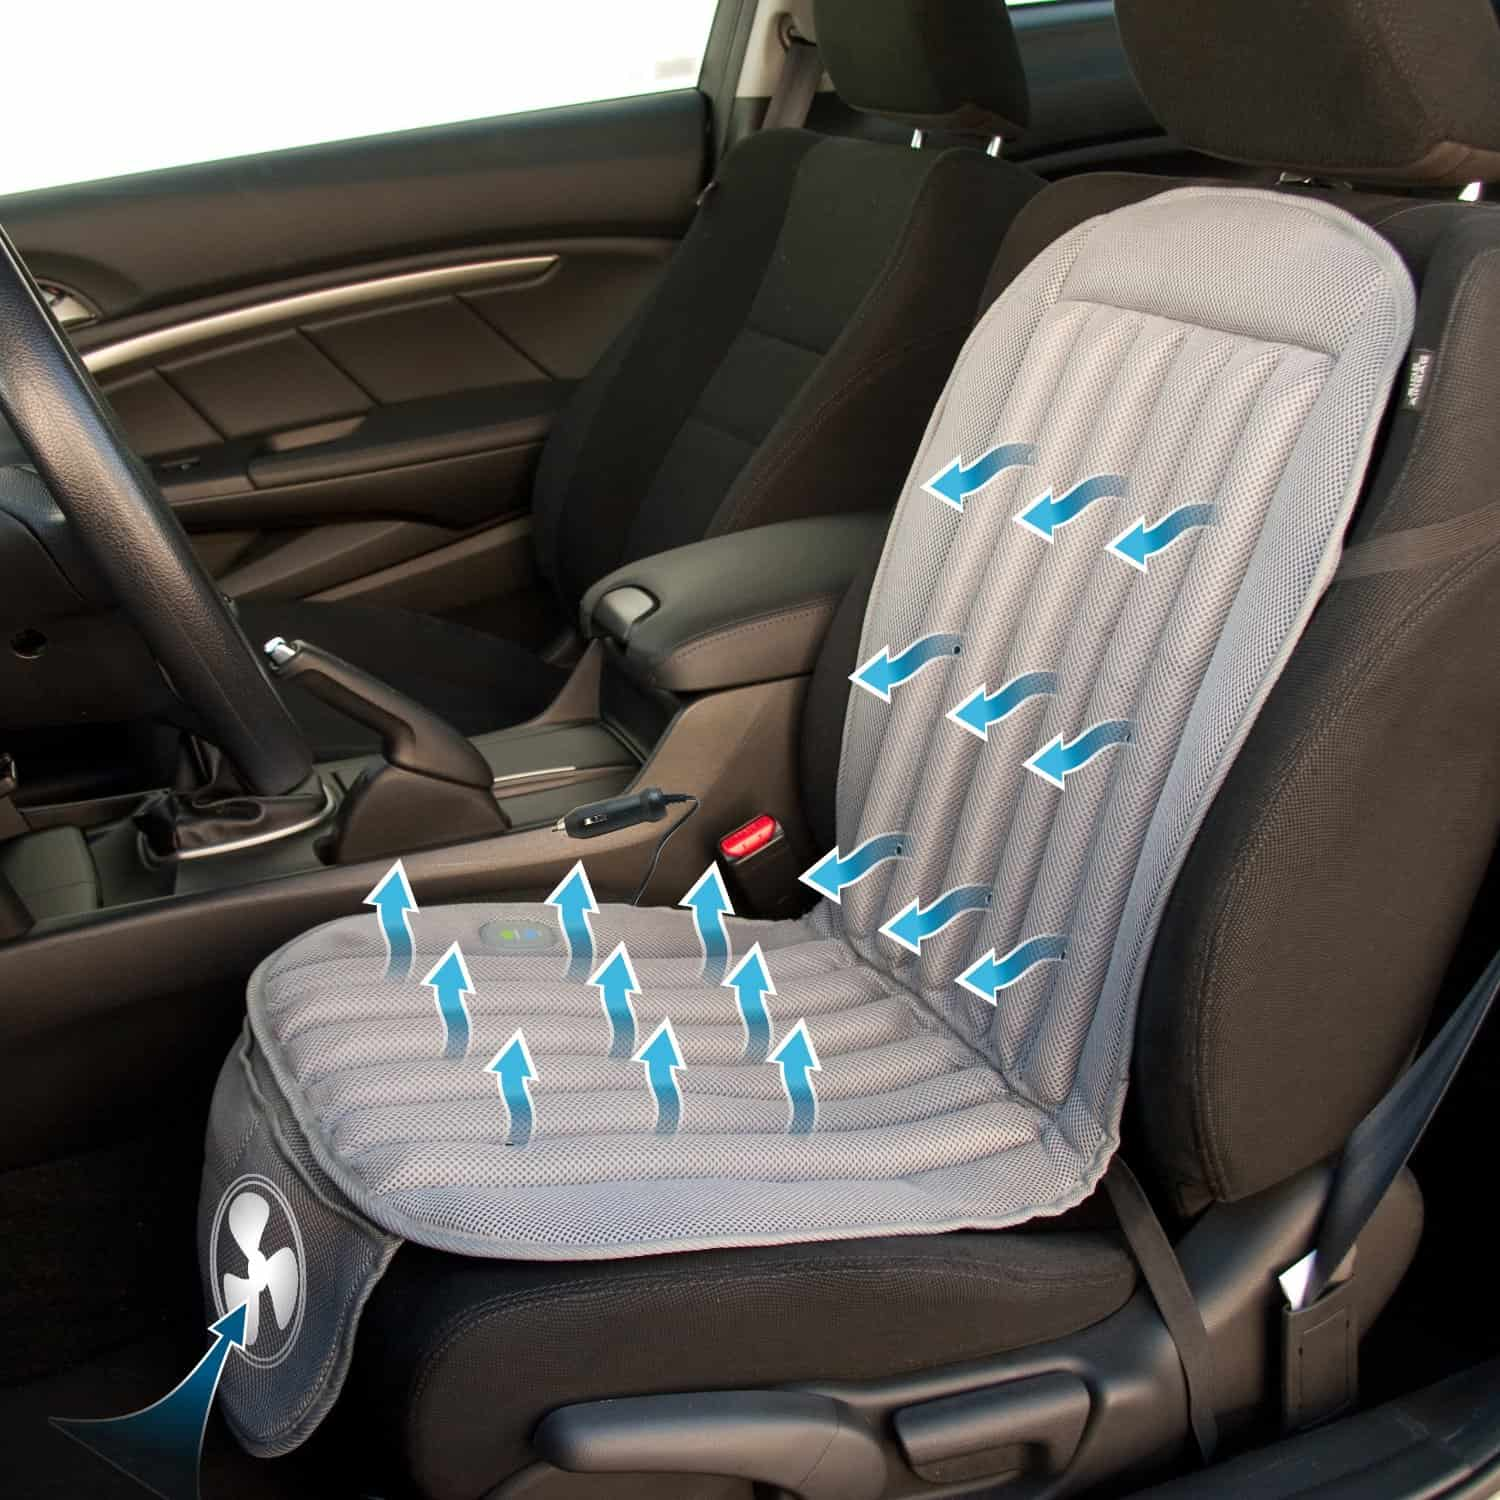 The Cooling Car Seat Blows Air All Around Your Body From Its 18 Ventilation Holes Which Can Be Adjusted With A Push Of Button For Either High Flow Or